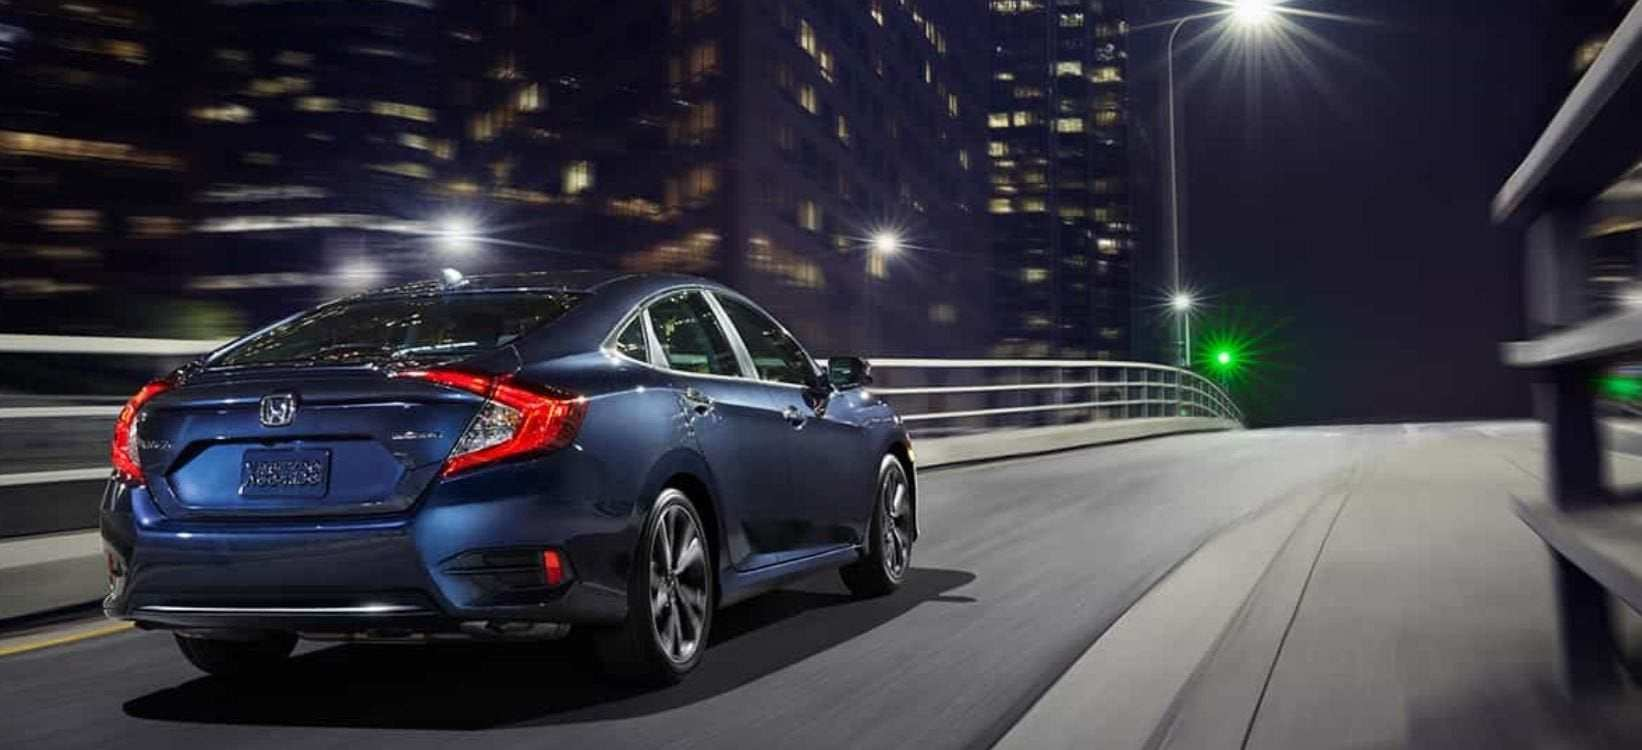 82 All New 2019 Honda Civic Research New